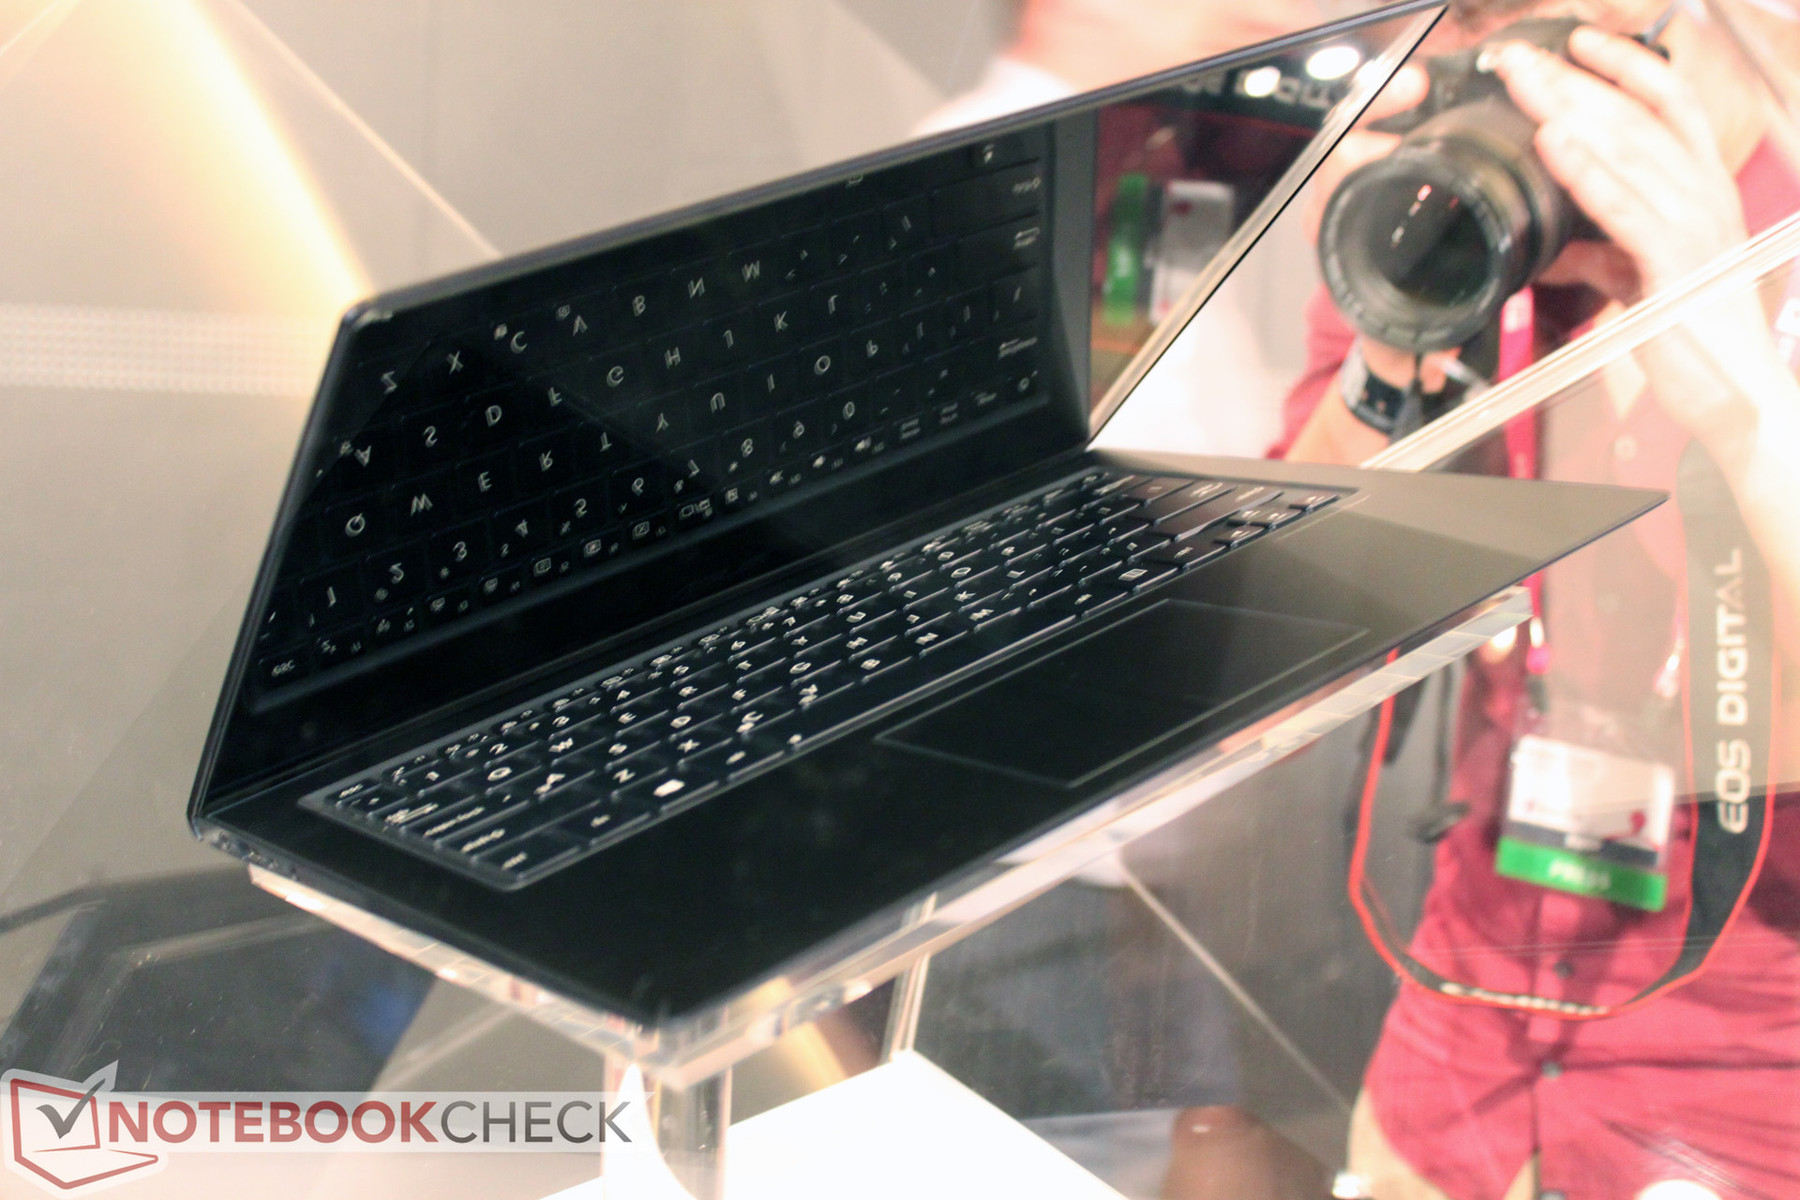 asus zenbook infinity - notebookcheck externe tests